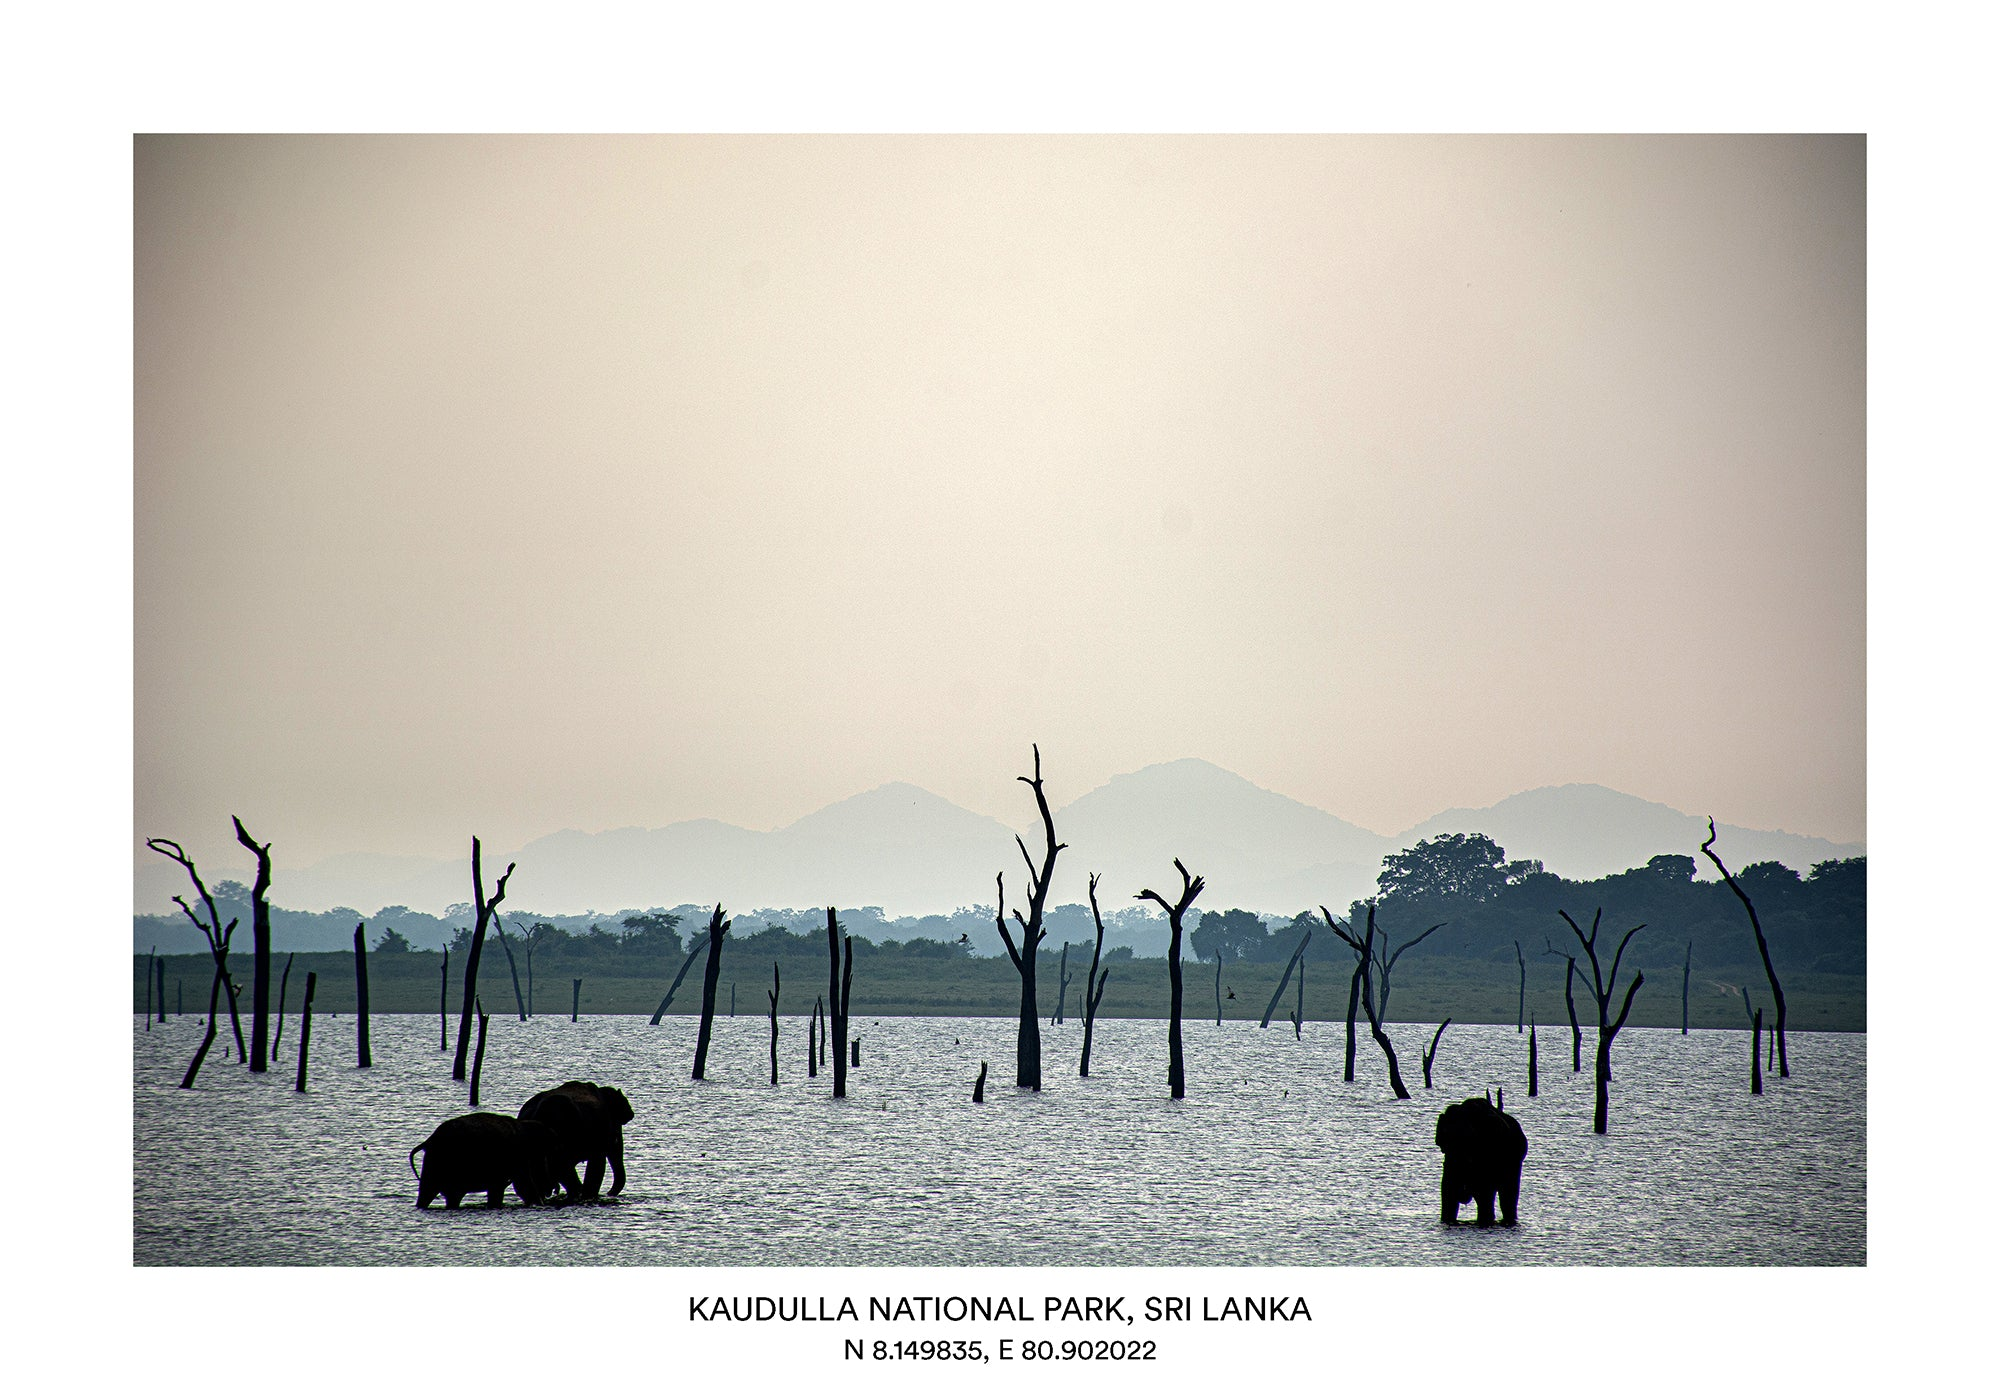 LKA - Kaudulla National Park, Sri Lanka 2